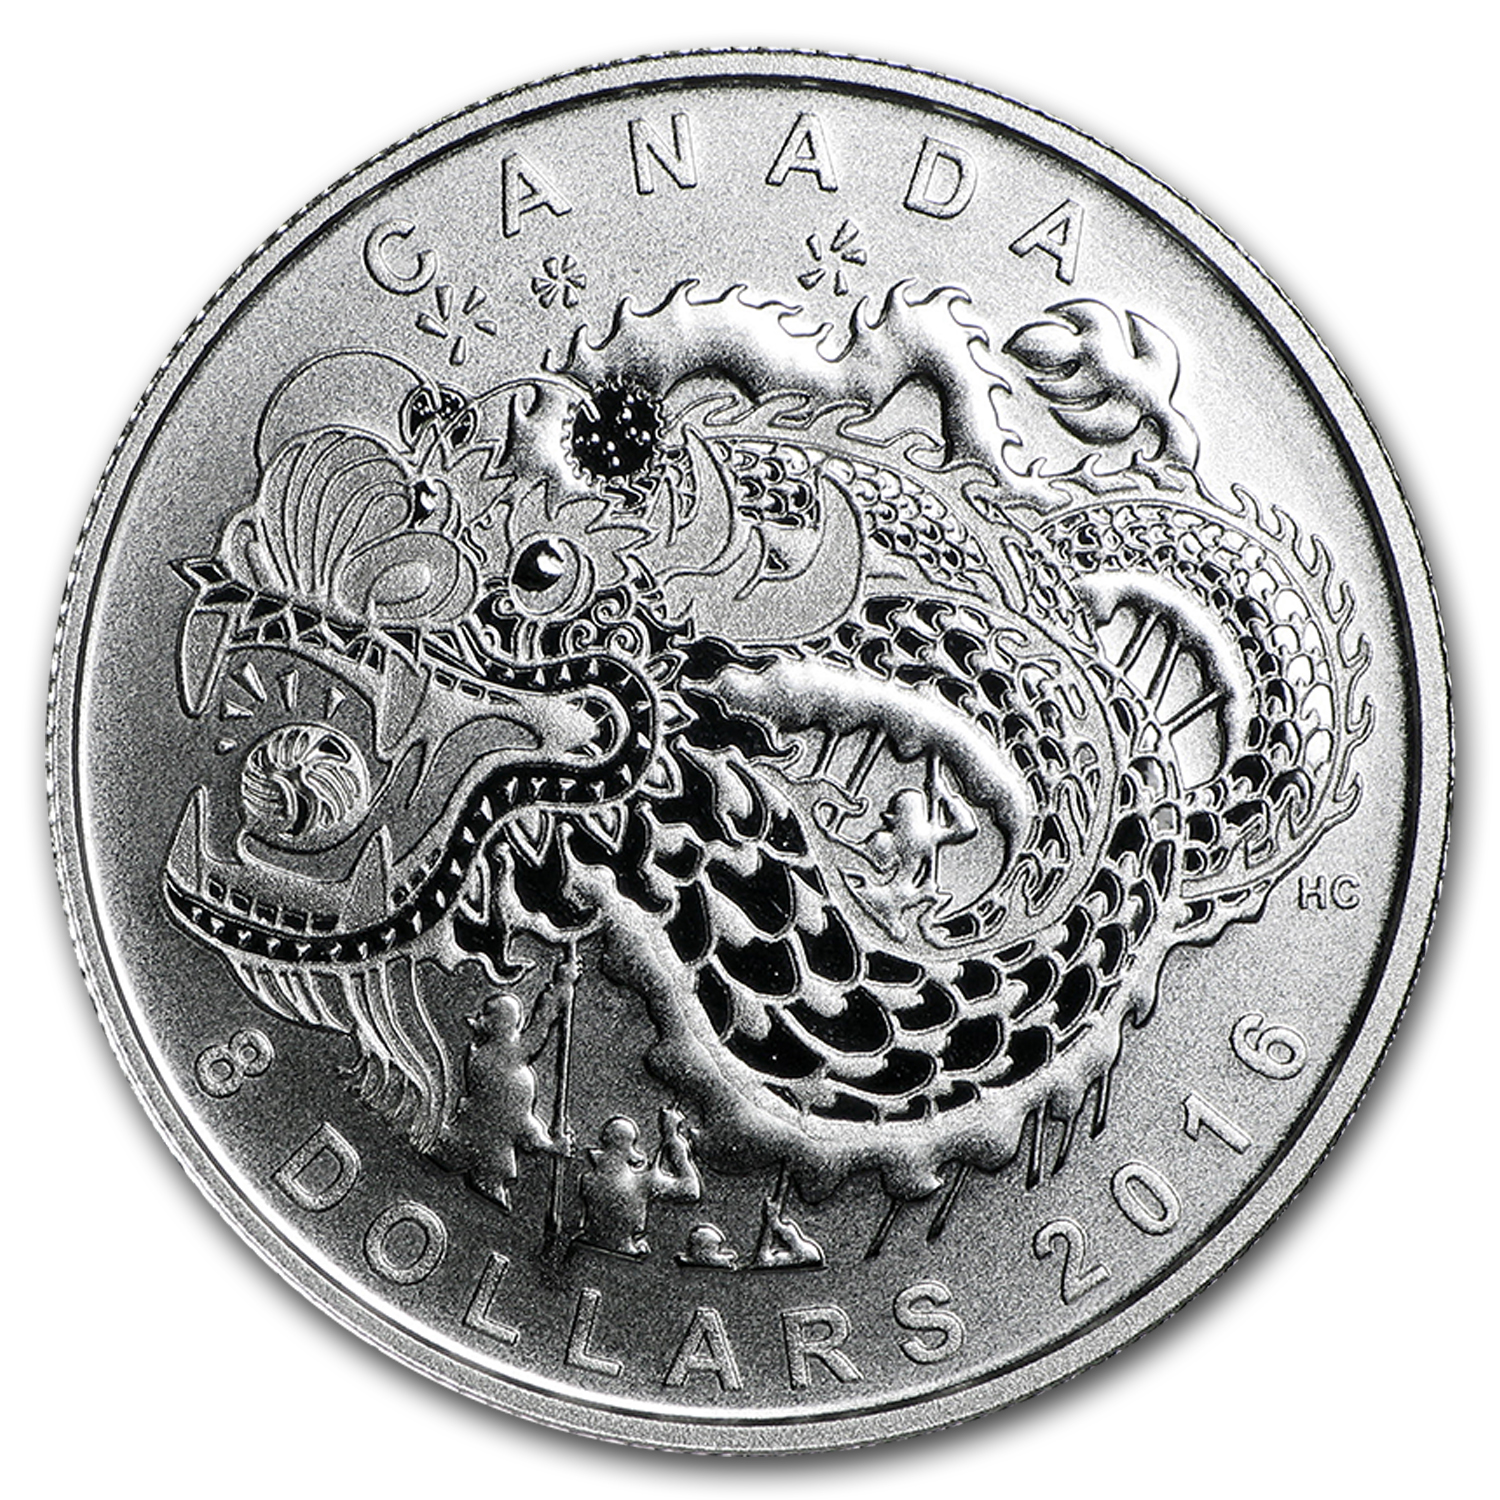 2016 Canada 1/4 oz Silver $8 Dragon Dance